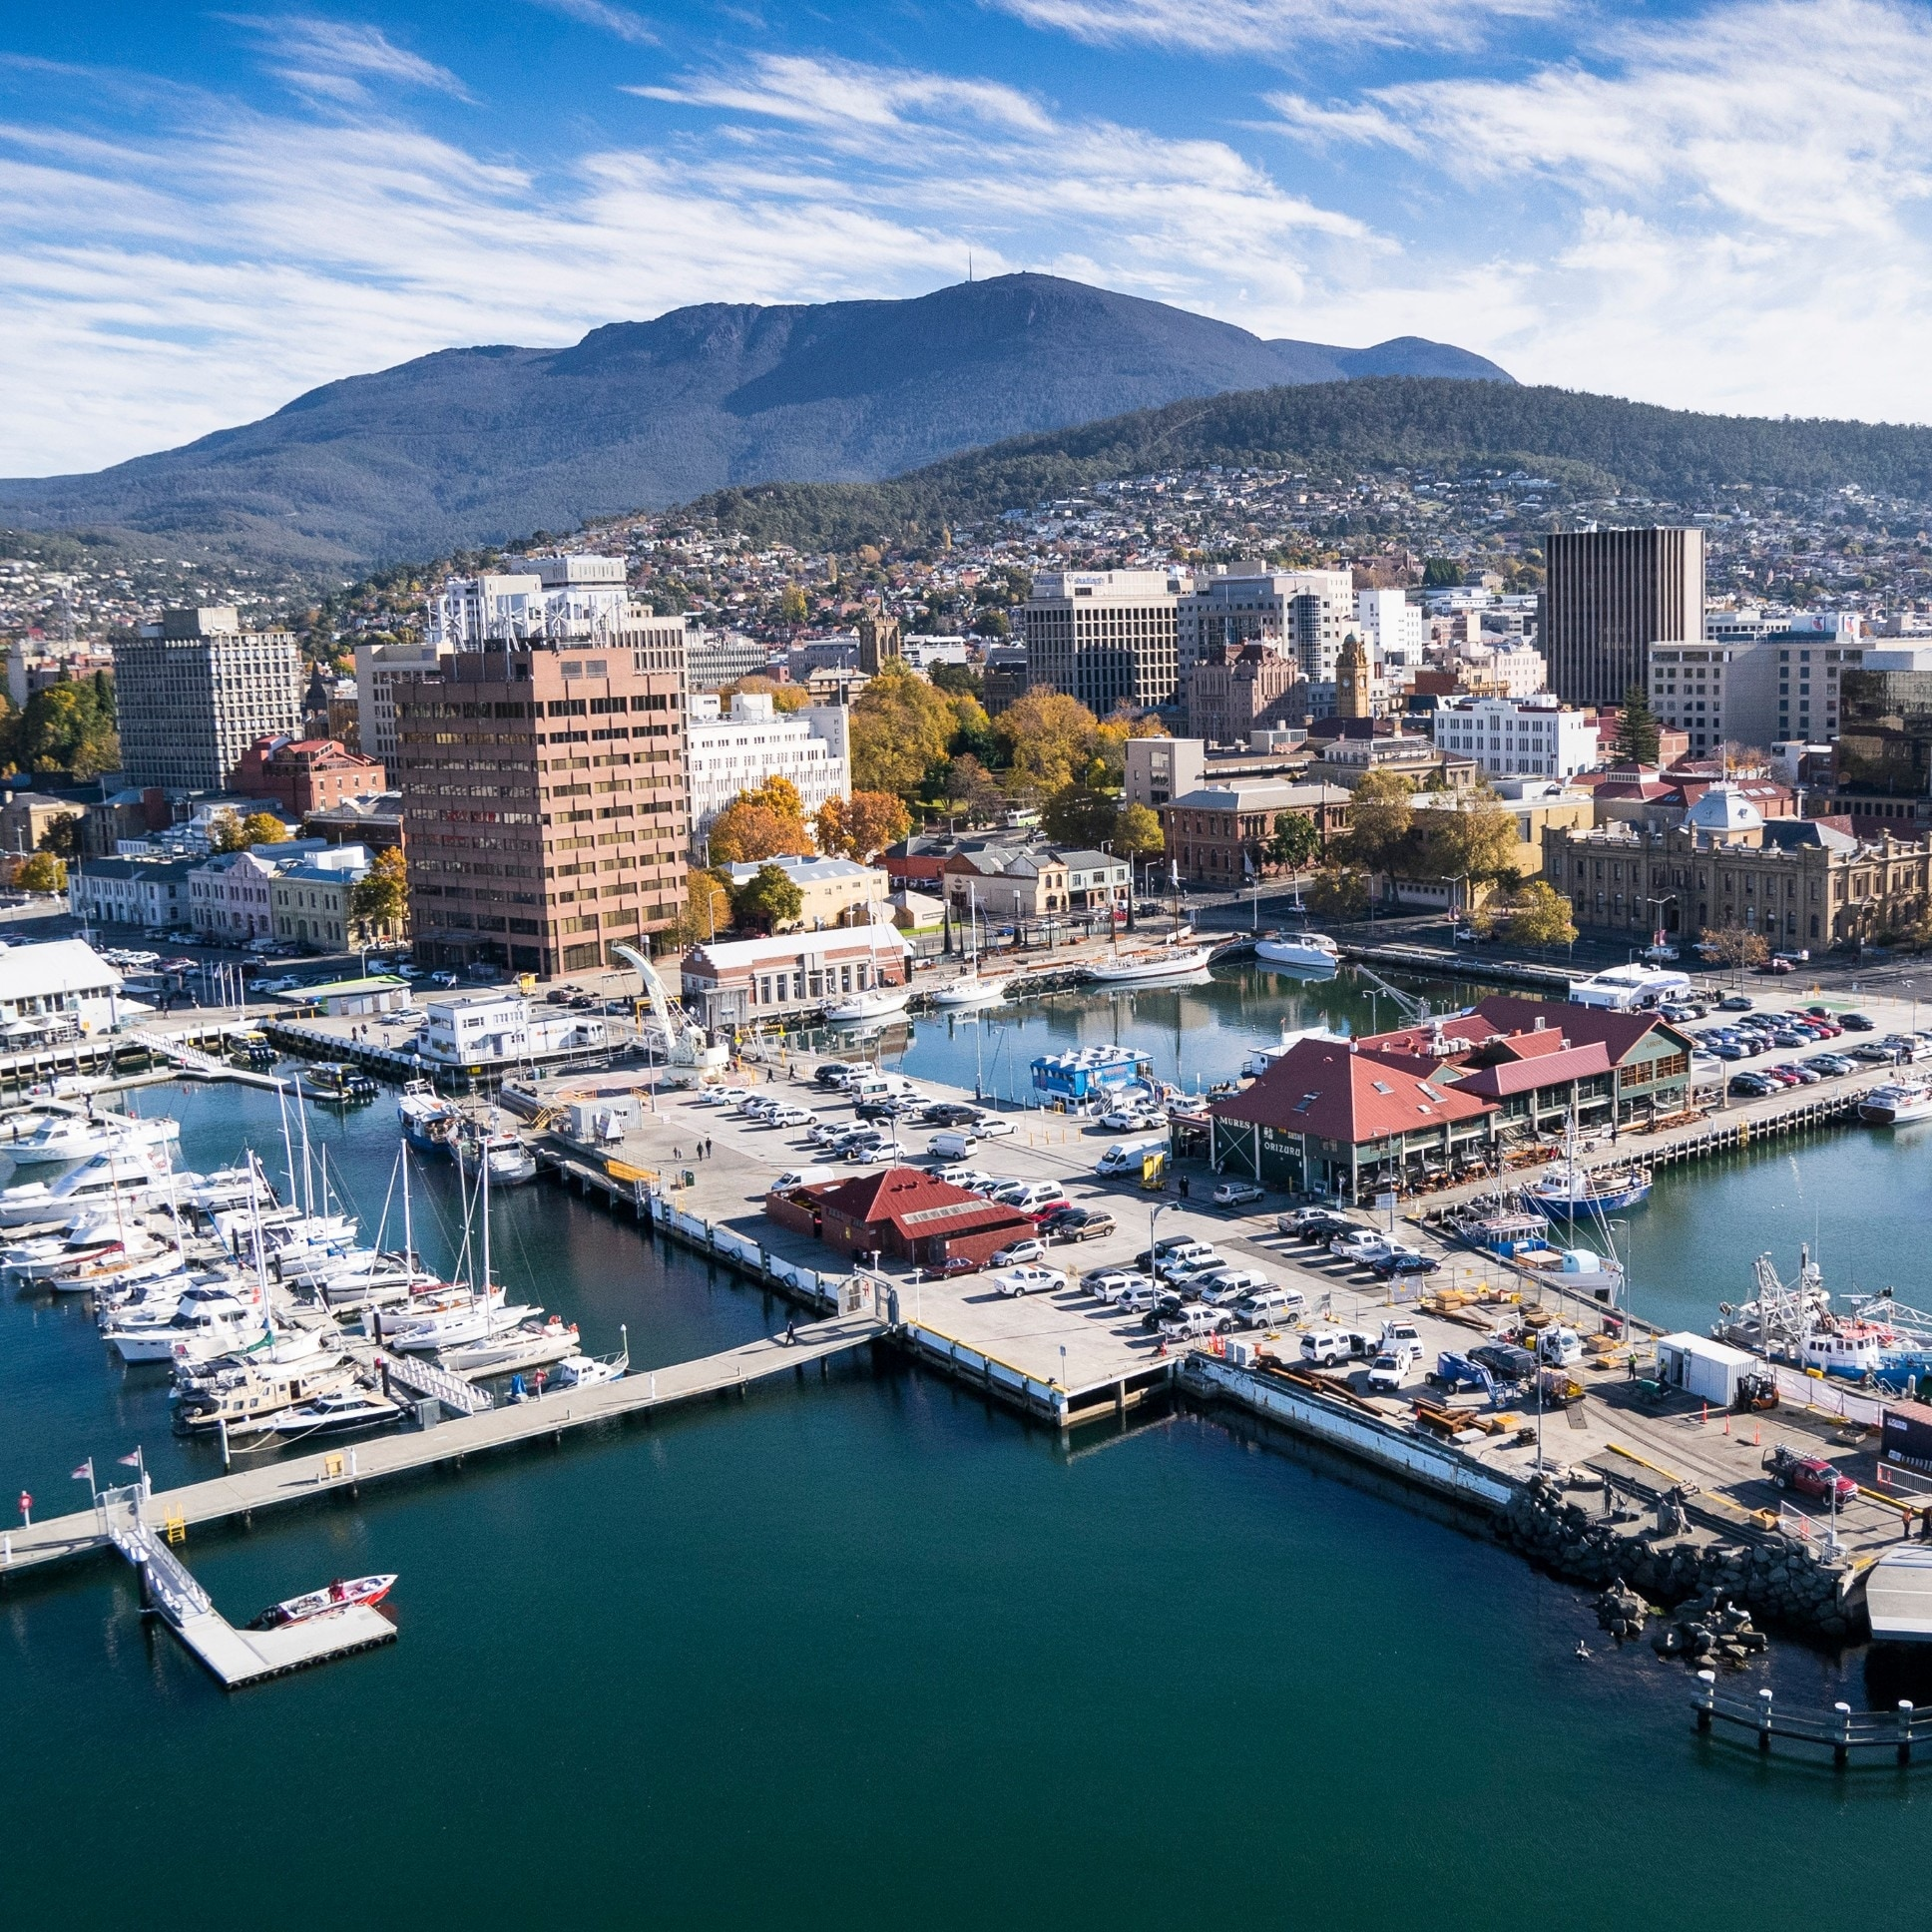 Hobart from the air, Hobart, TAS © Stu Gibson